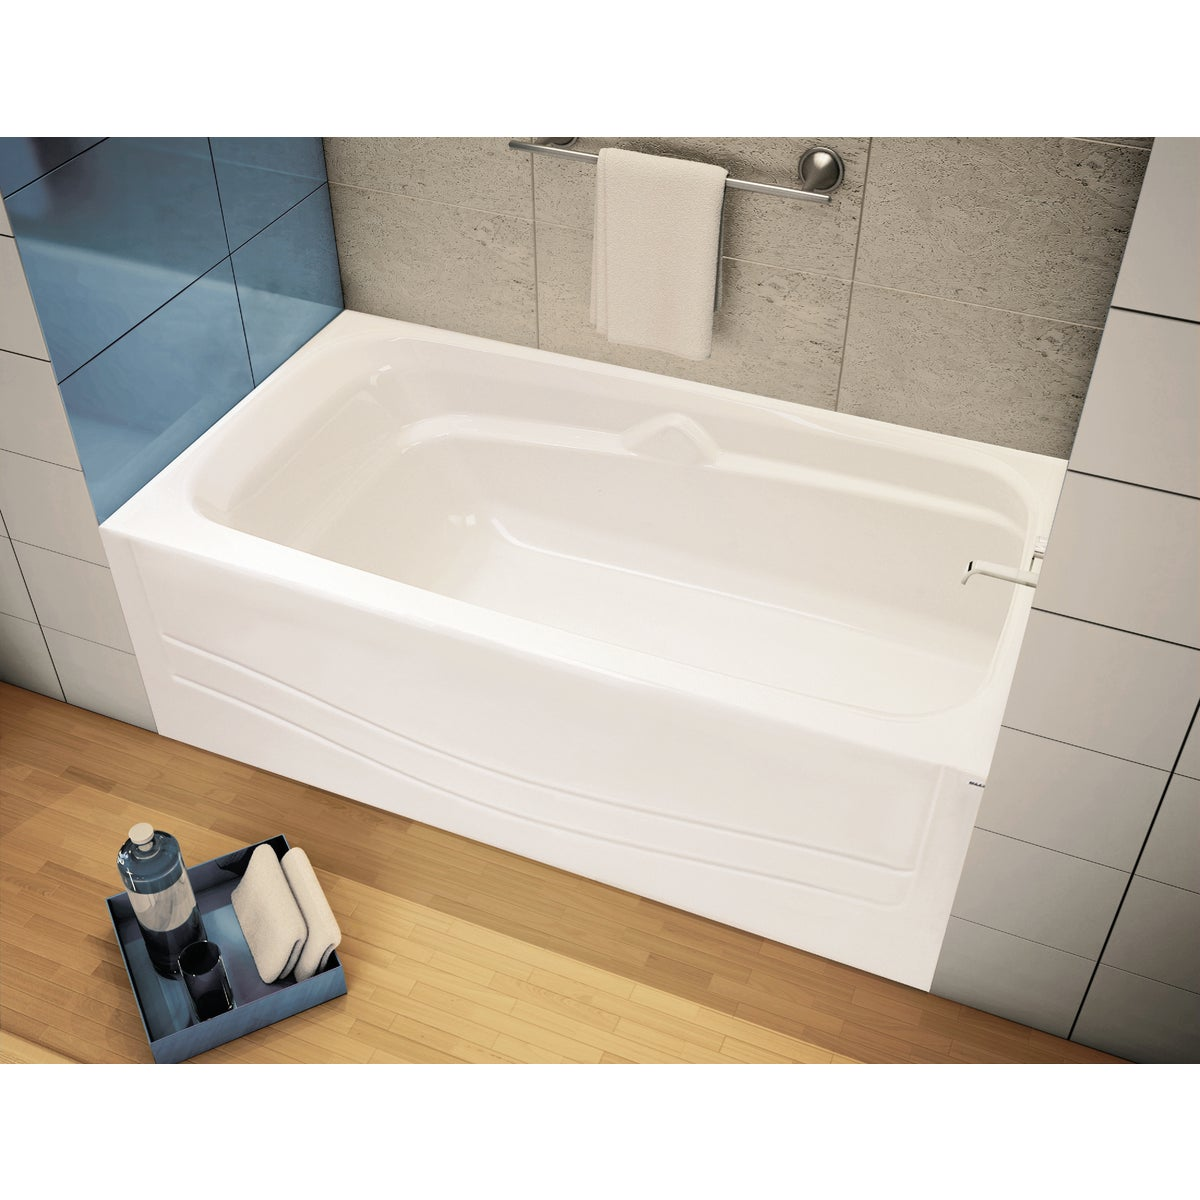 WHITE RH SOAKING TUB - 105524-002 by Maax Bath